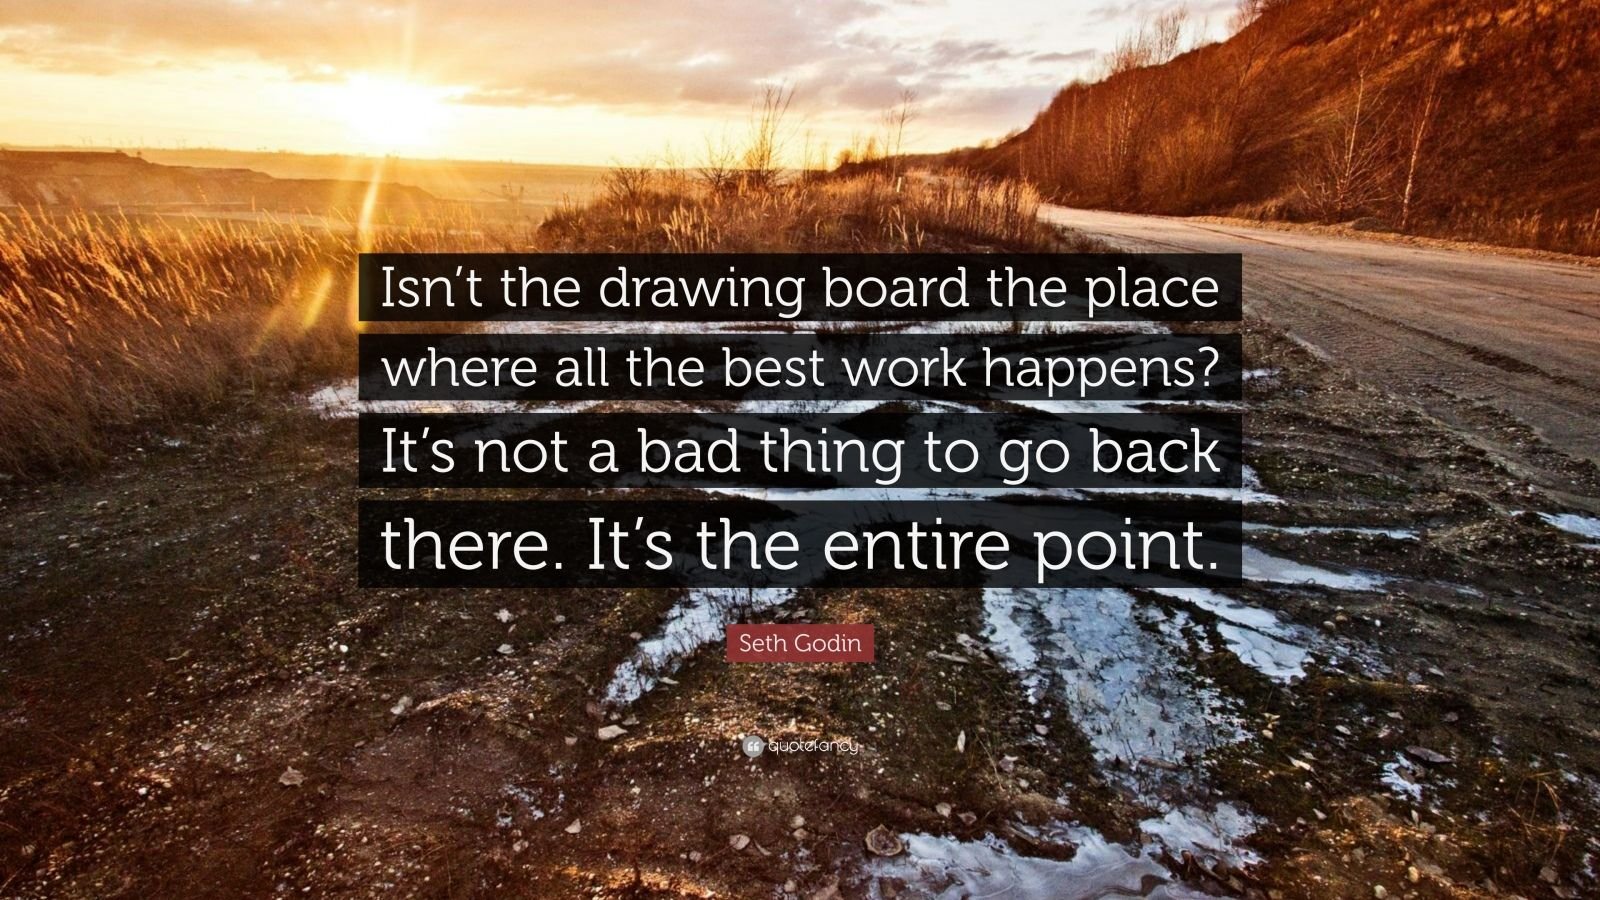 """Seth Godin Quote: """"Isn't the drawing board the place where all the best work happens? It's not a bad thing to go back there. It's the entire point."""""""